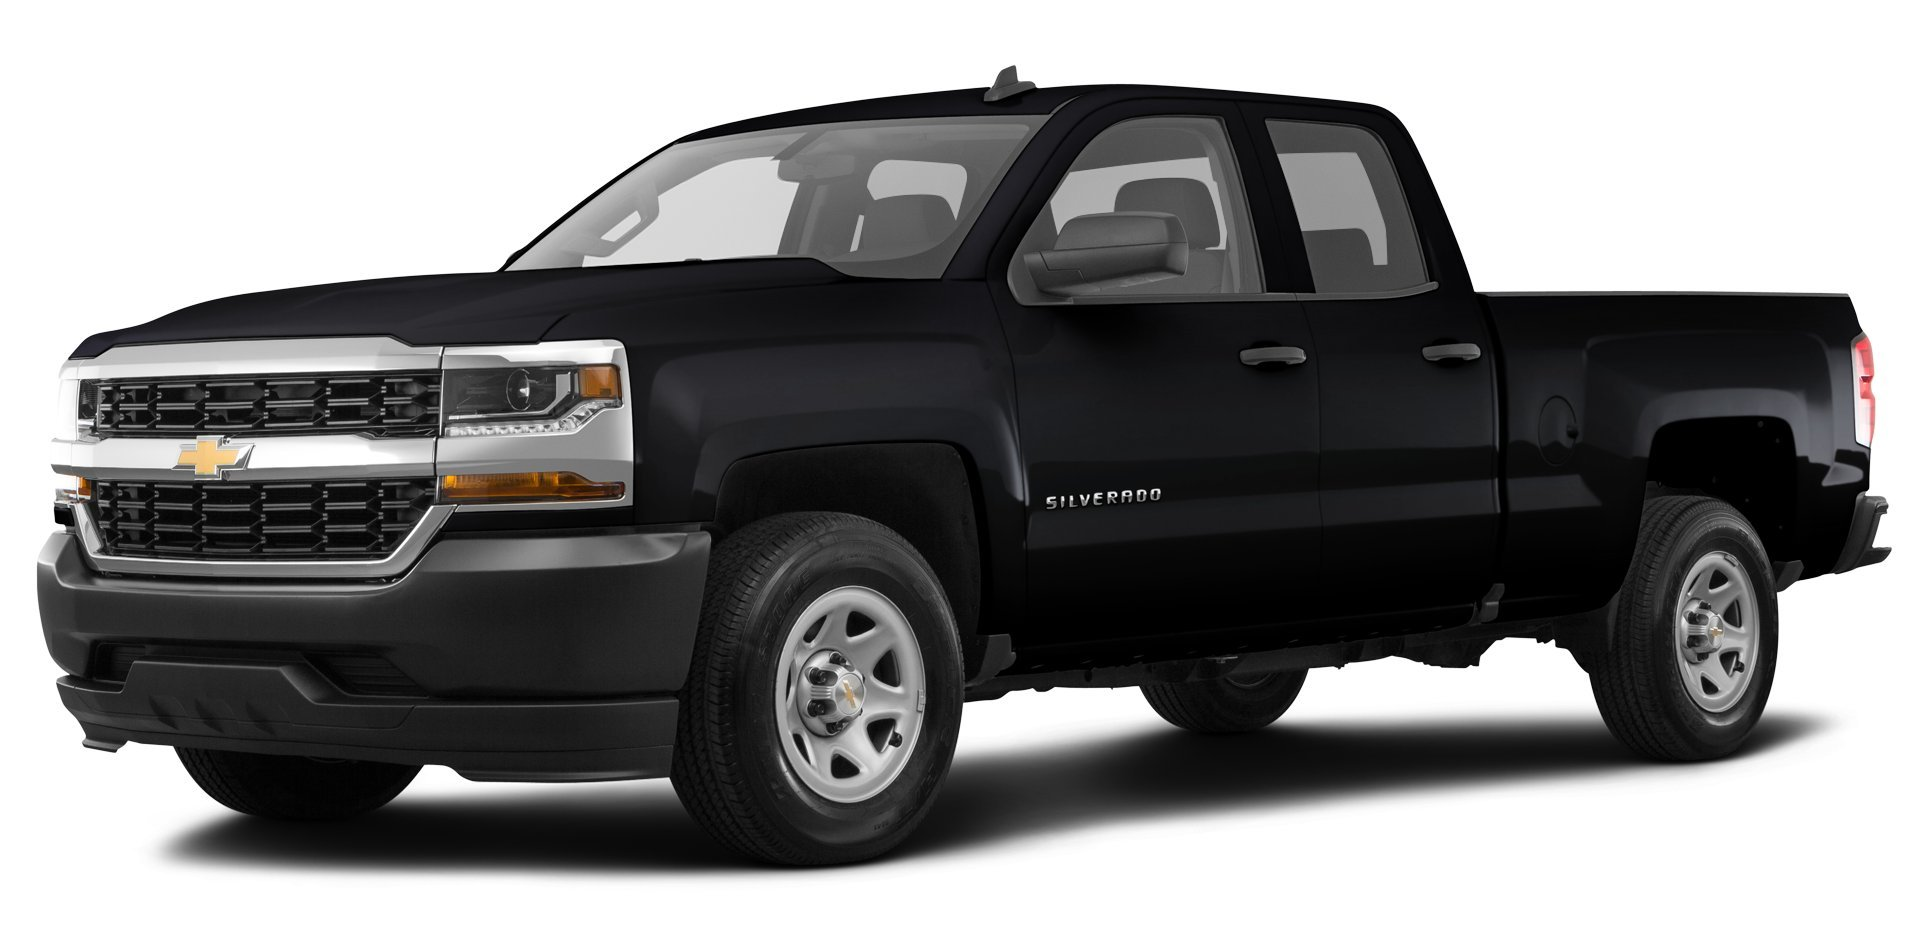 2017 chevrolet silverado 1500 reviews images and specs vehicles. Black Bedroom Furniture Sets. Home Design Ideas